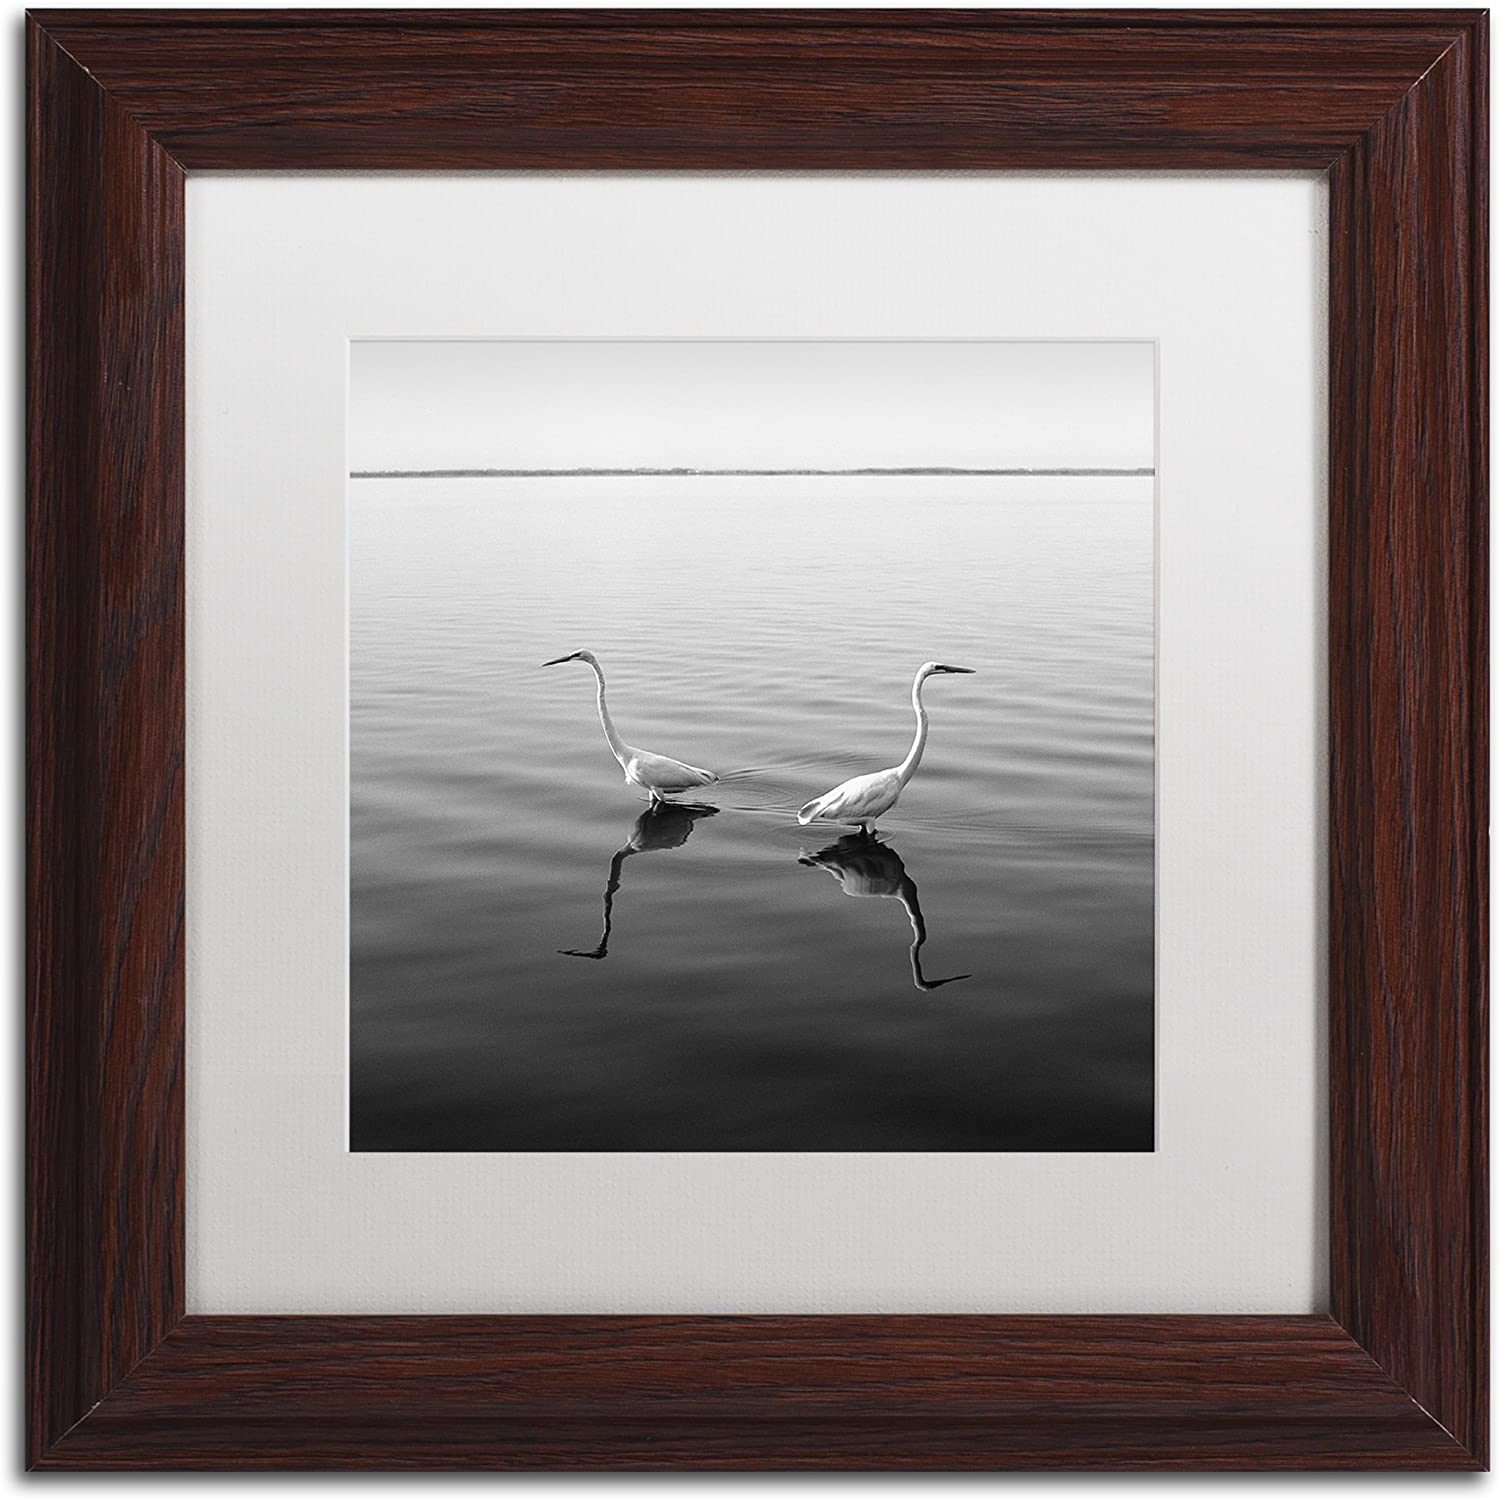 Trademark Fine Art 2 Herons by Moises Levy in White Matte and Wood Framed Artwork, 11 by 11Inch